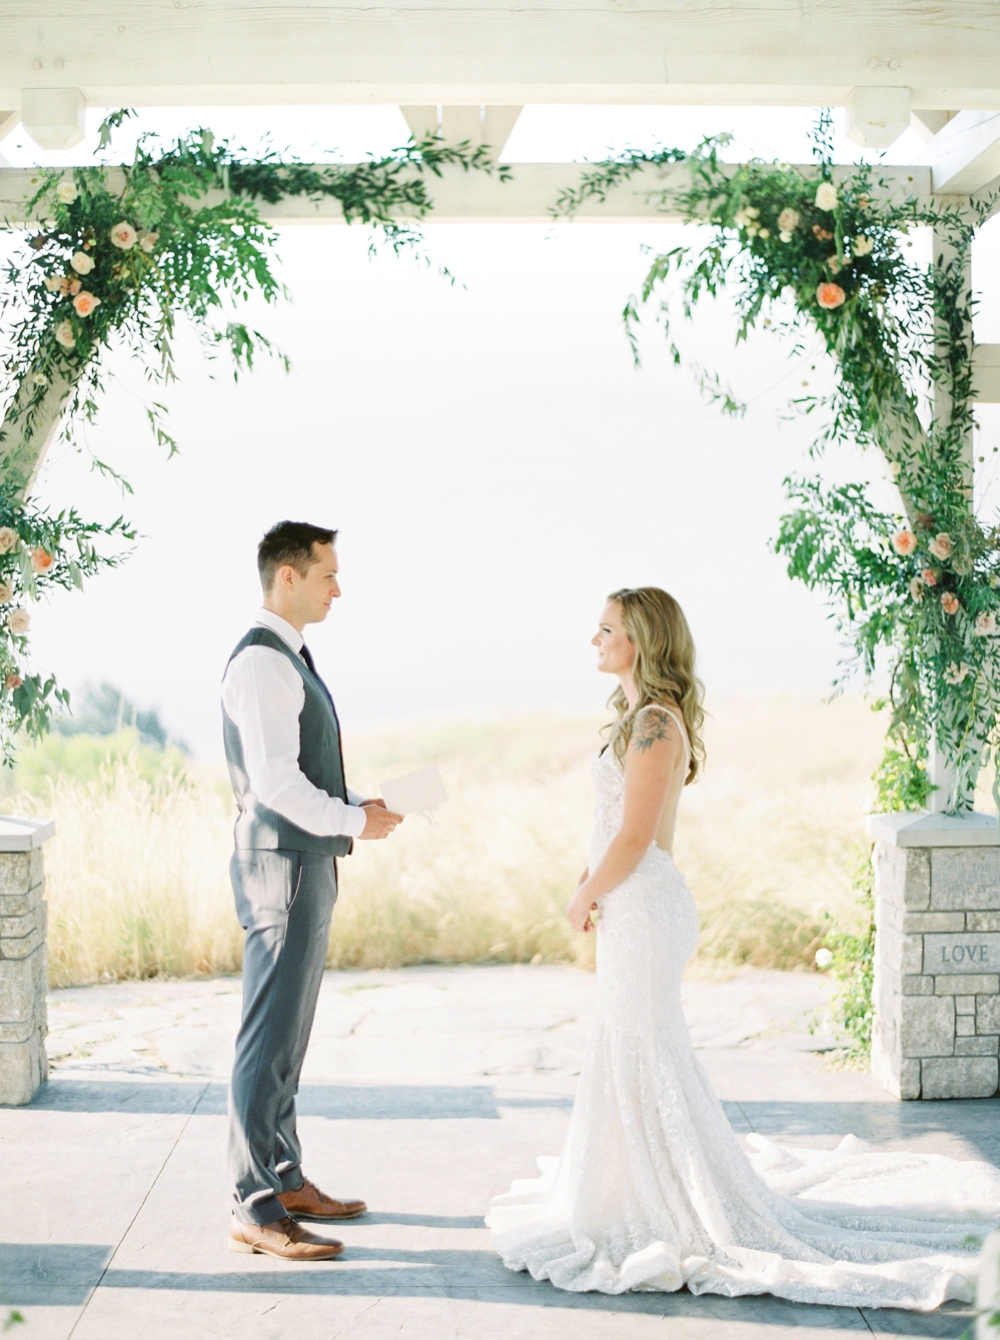 Sanctuary Gardens Kelowna Wedding | Elopement Photography | Wedding Ceremony | Justine Milton Fine Art Film Wedding Photographers